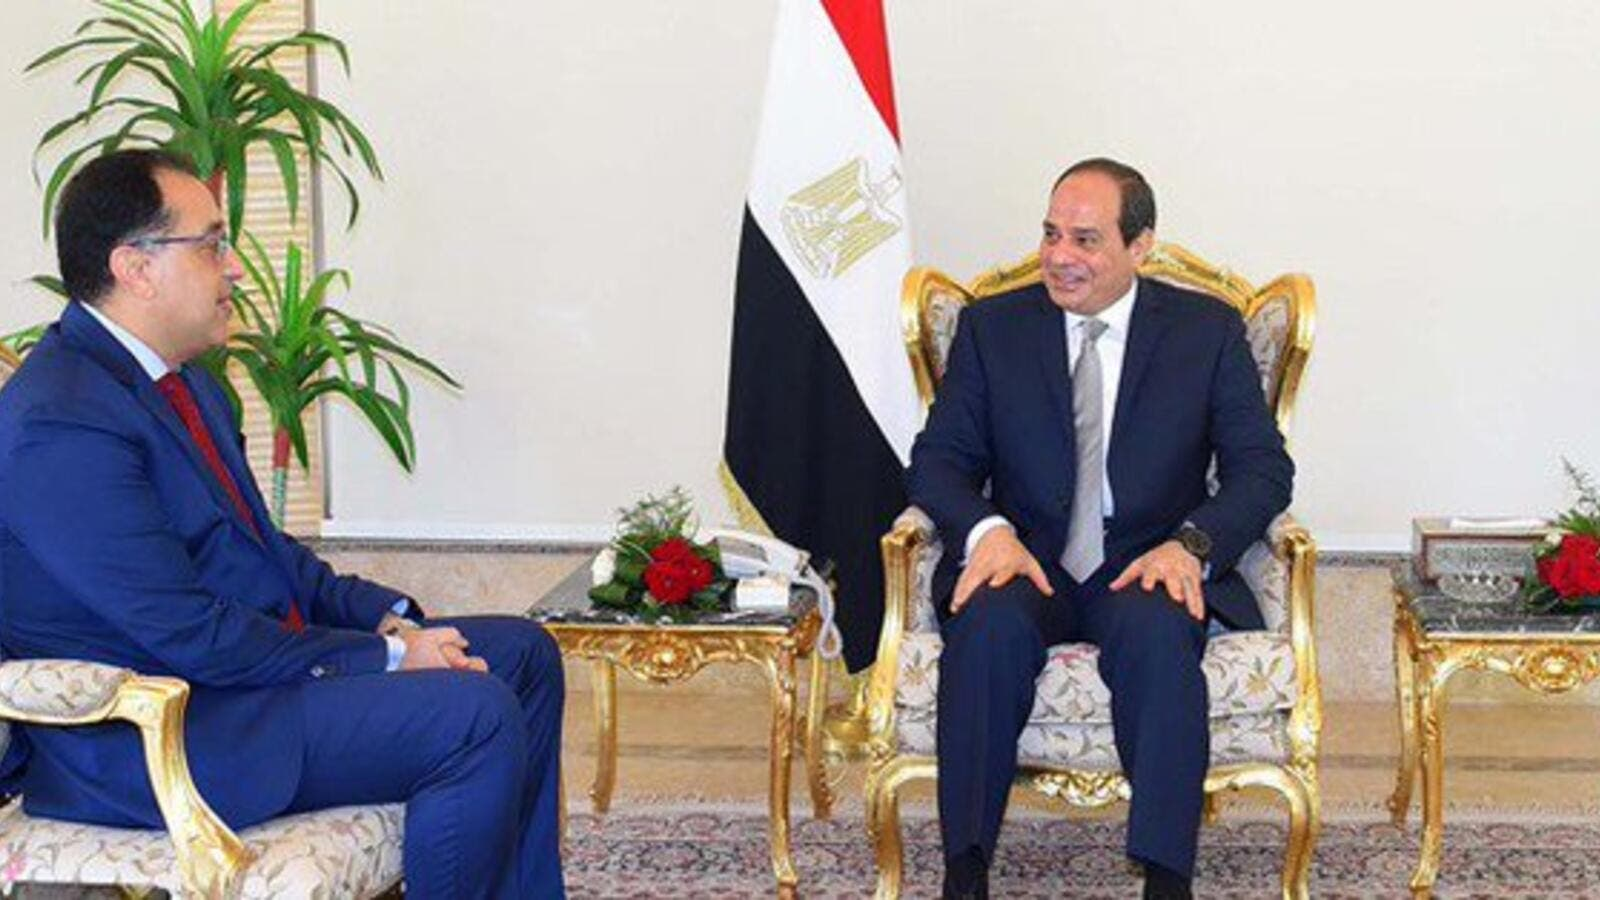 Egyptian Prime Minister Moustafa Madbouly (R) could lose his position  (Twitter)